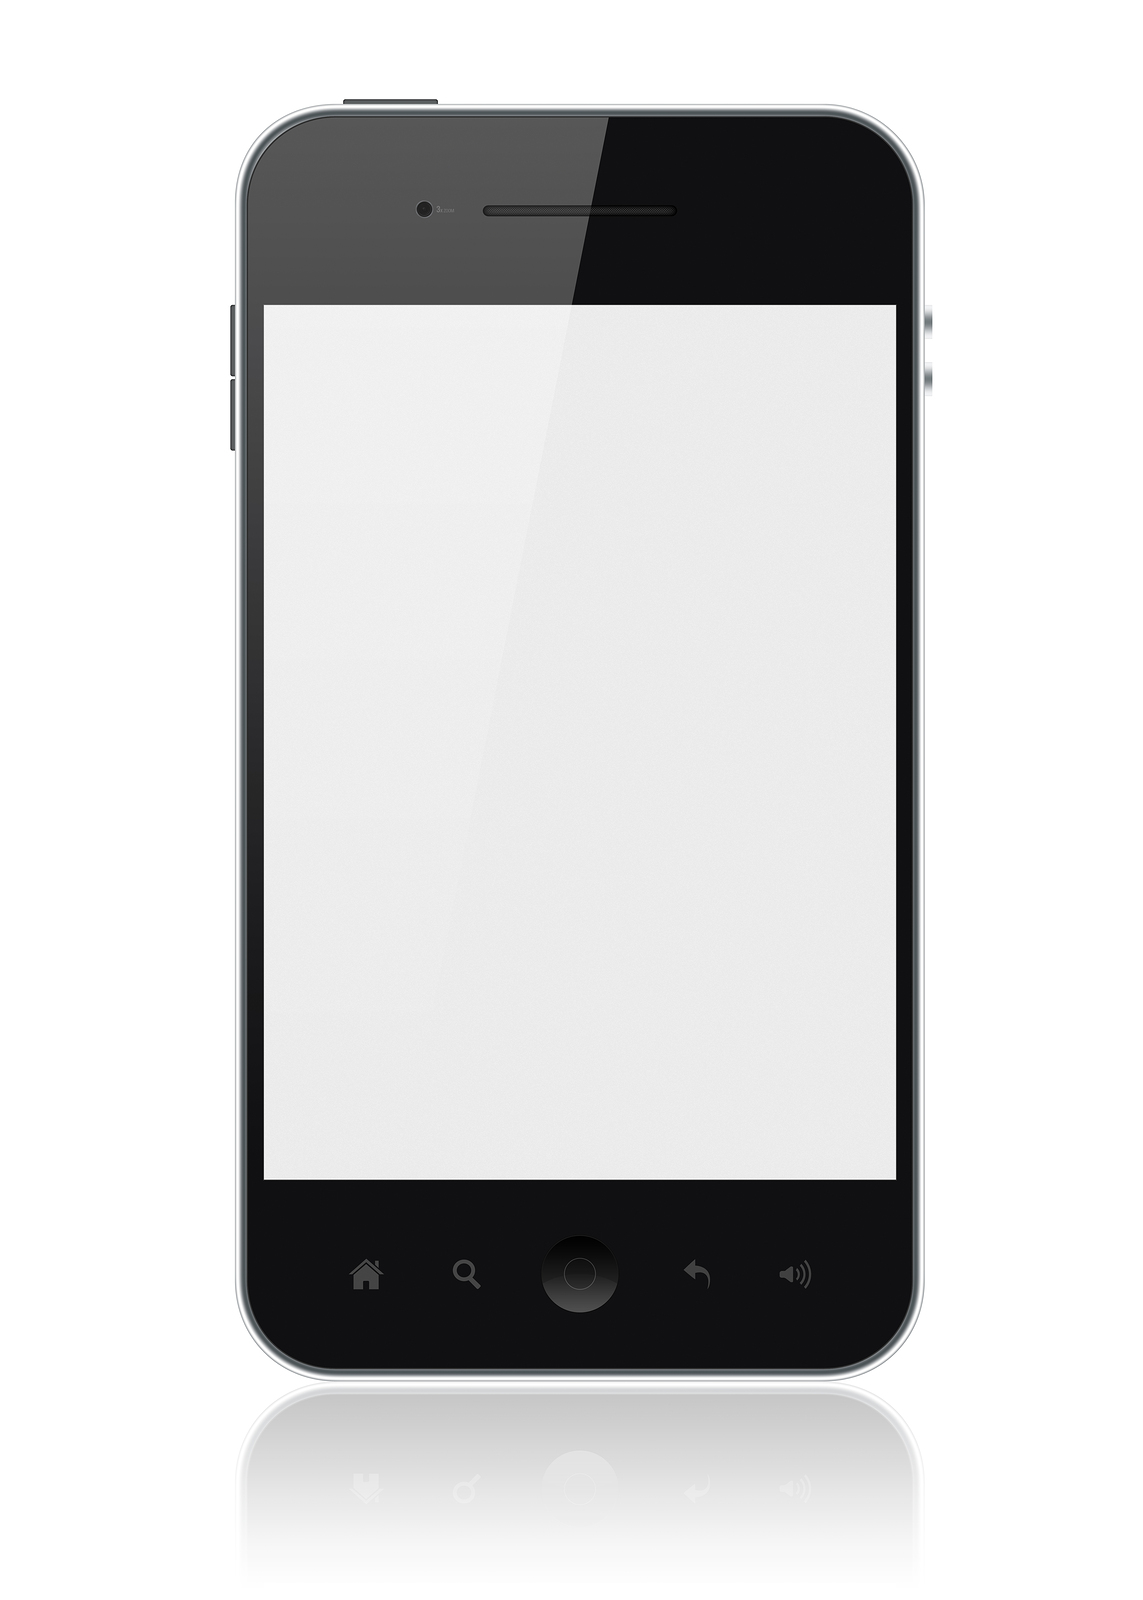 bigstock-Apple-Iphone-With-Blank-Screen-29625881